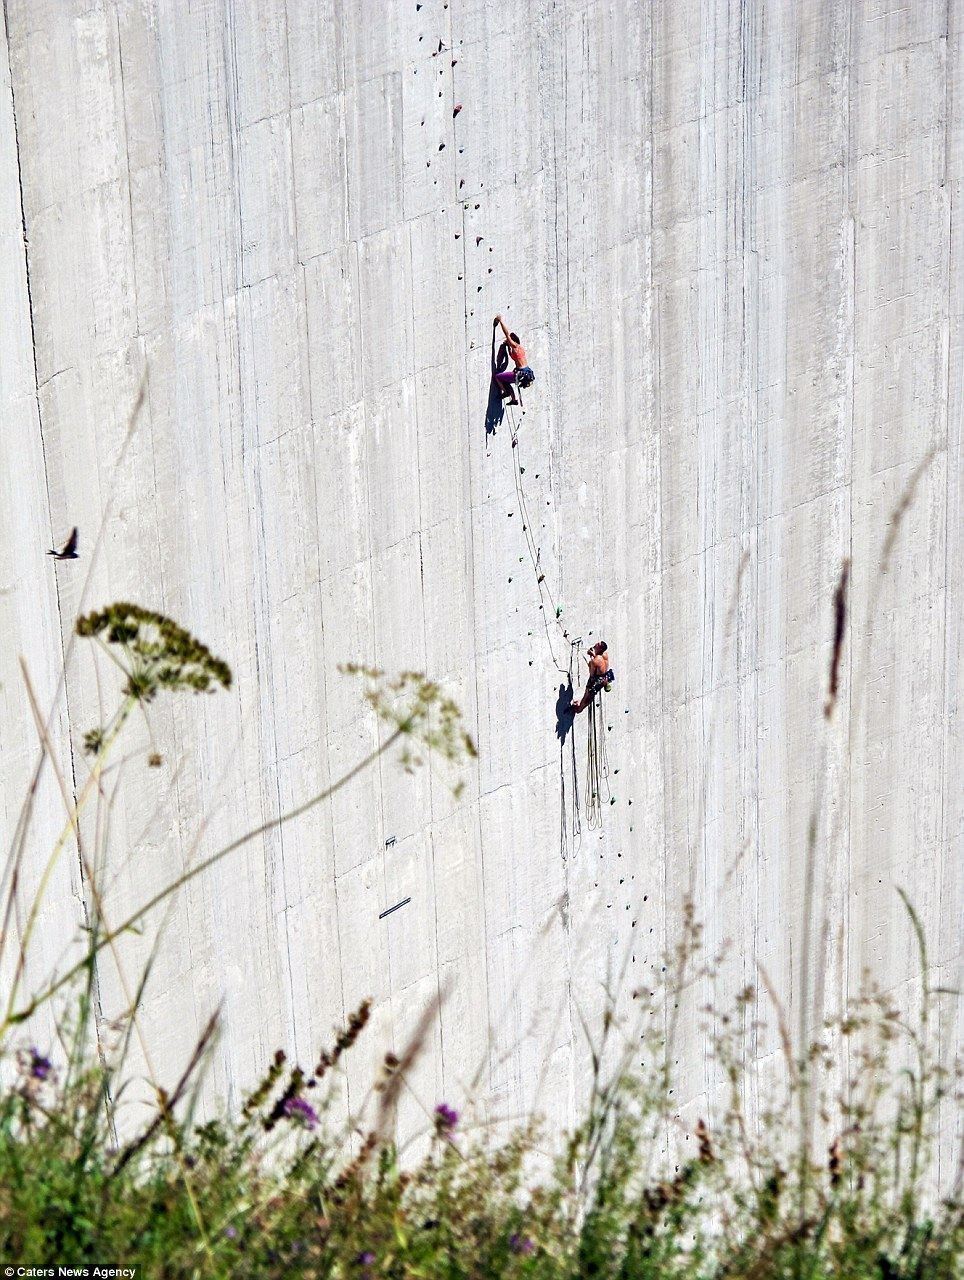 'Are we there yet?': Daredevils mid-way through the 540ft climb of the 540ft-high dam